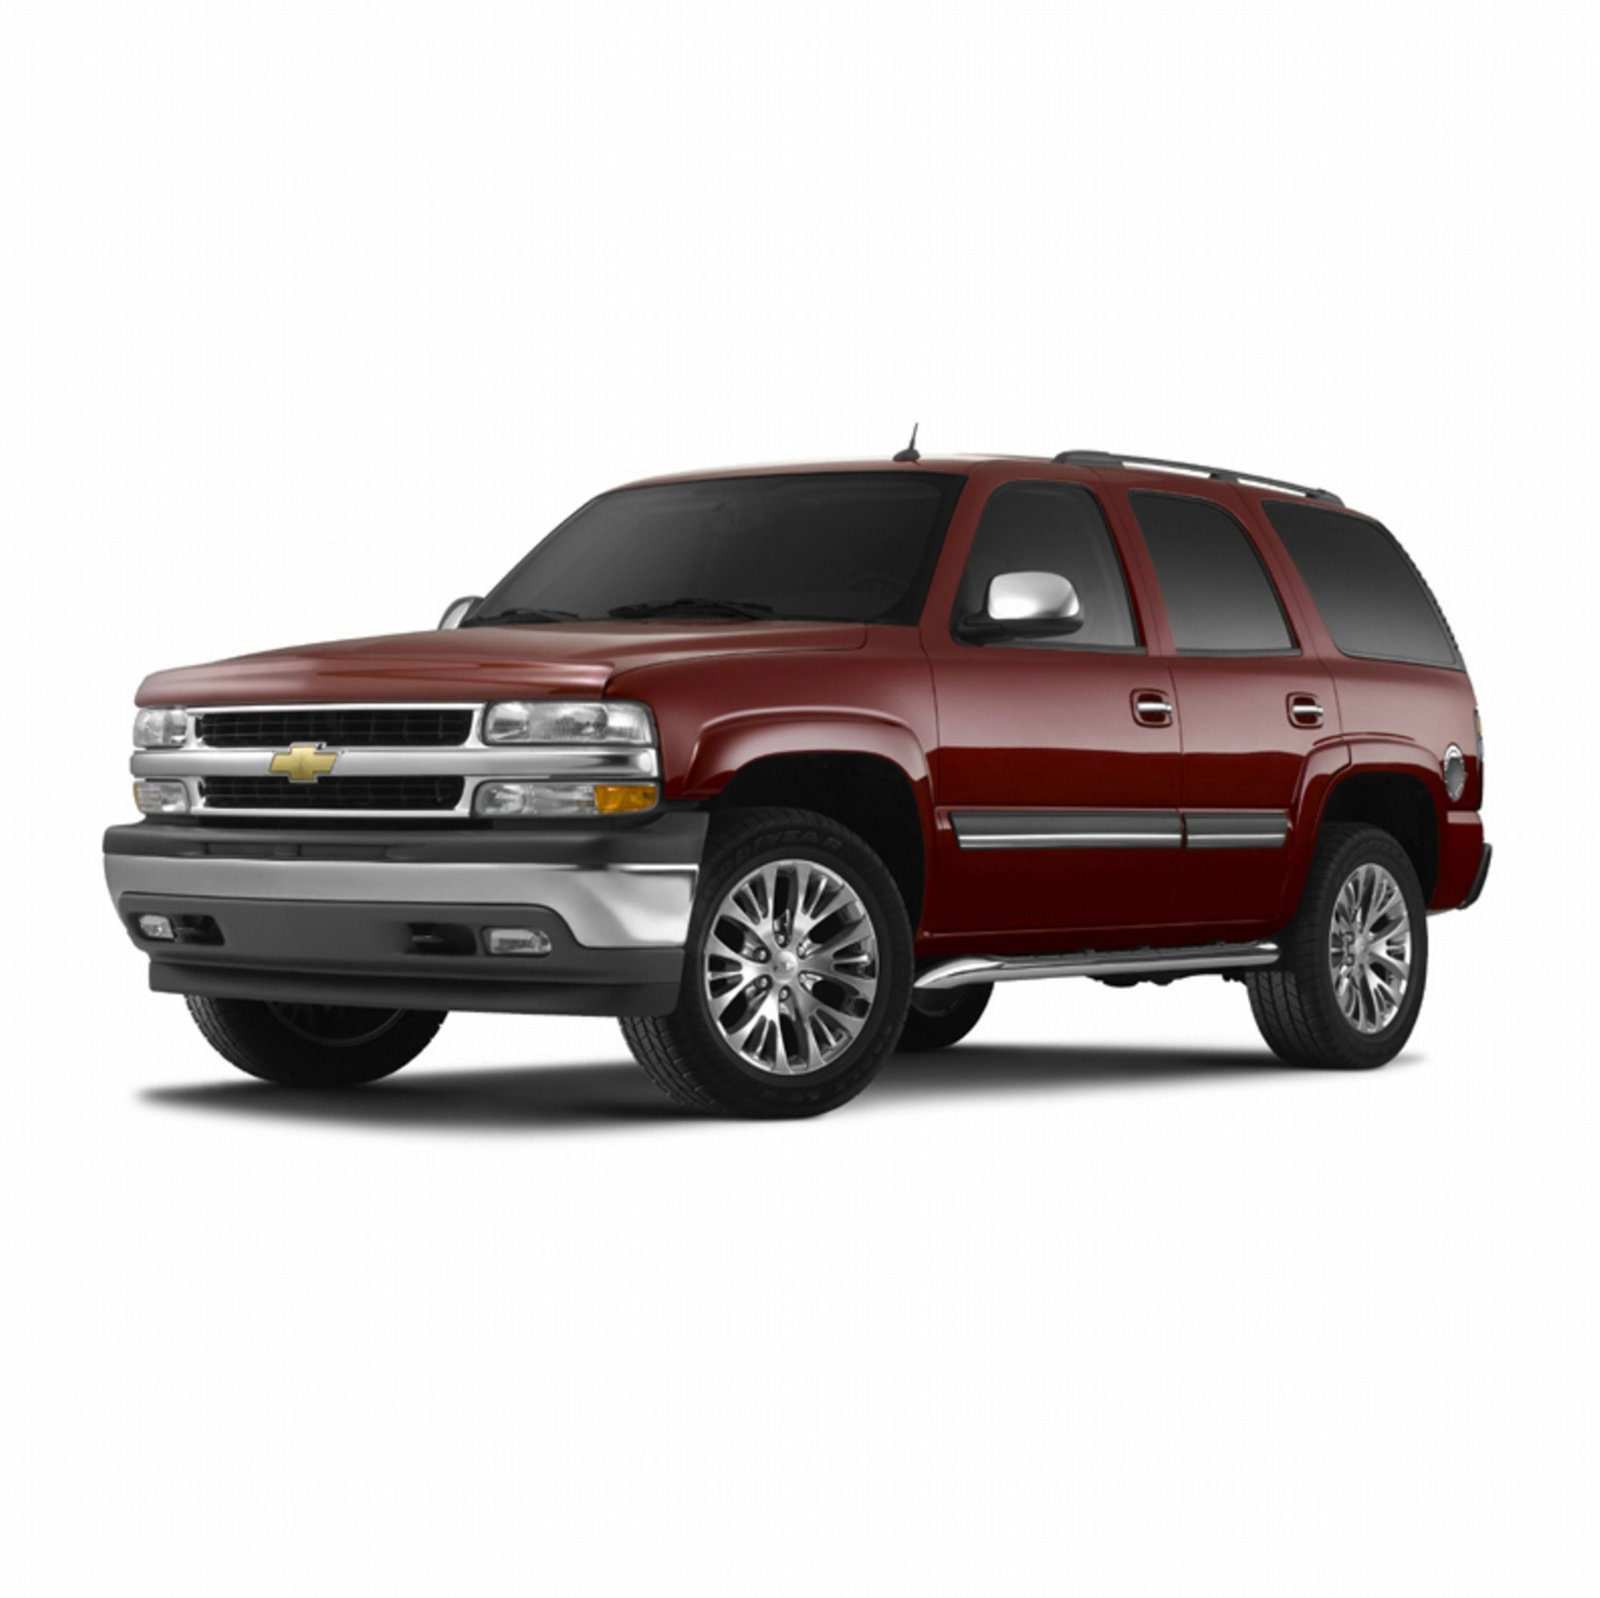 2000 chevrolet tahoe reviews specs and prices autos post. Black Bedroom Furniture Sets. Home Design Ideas